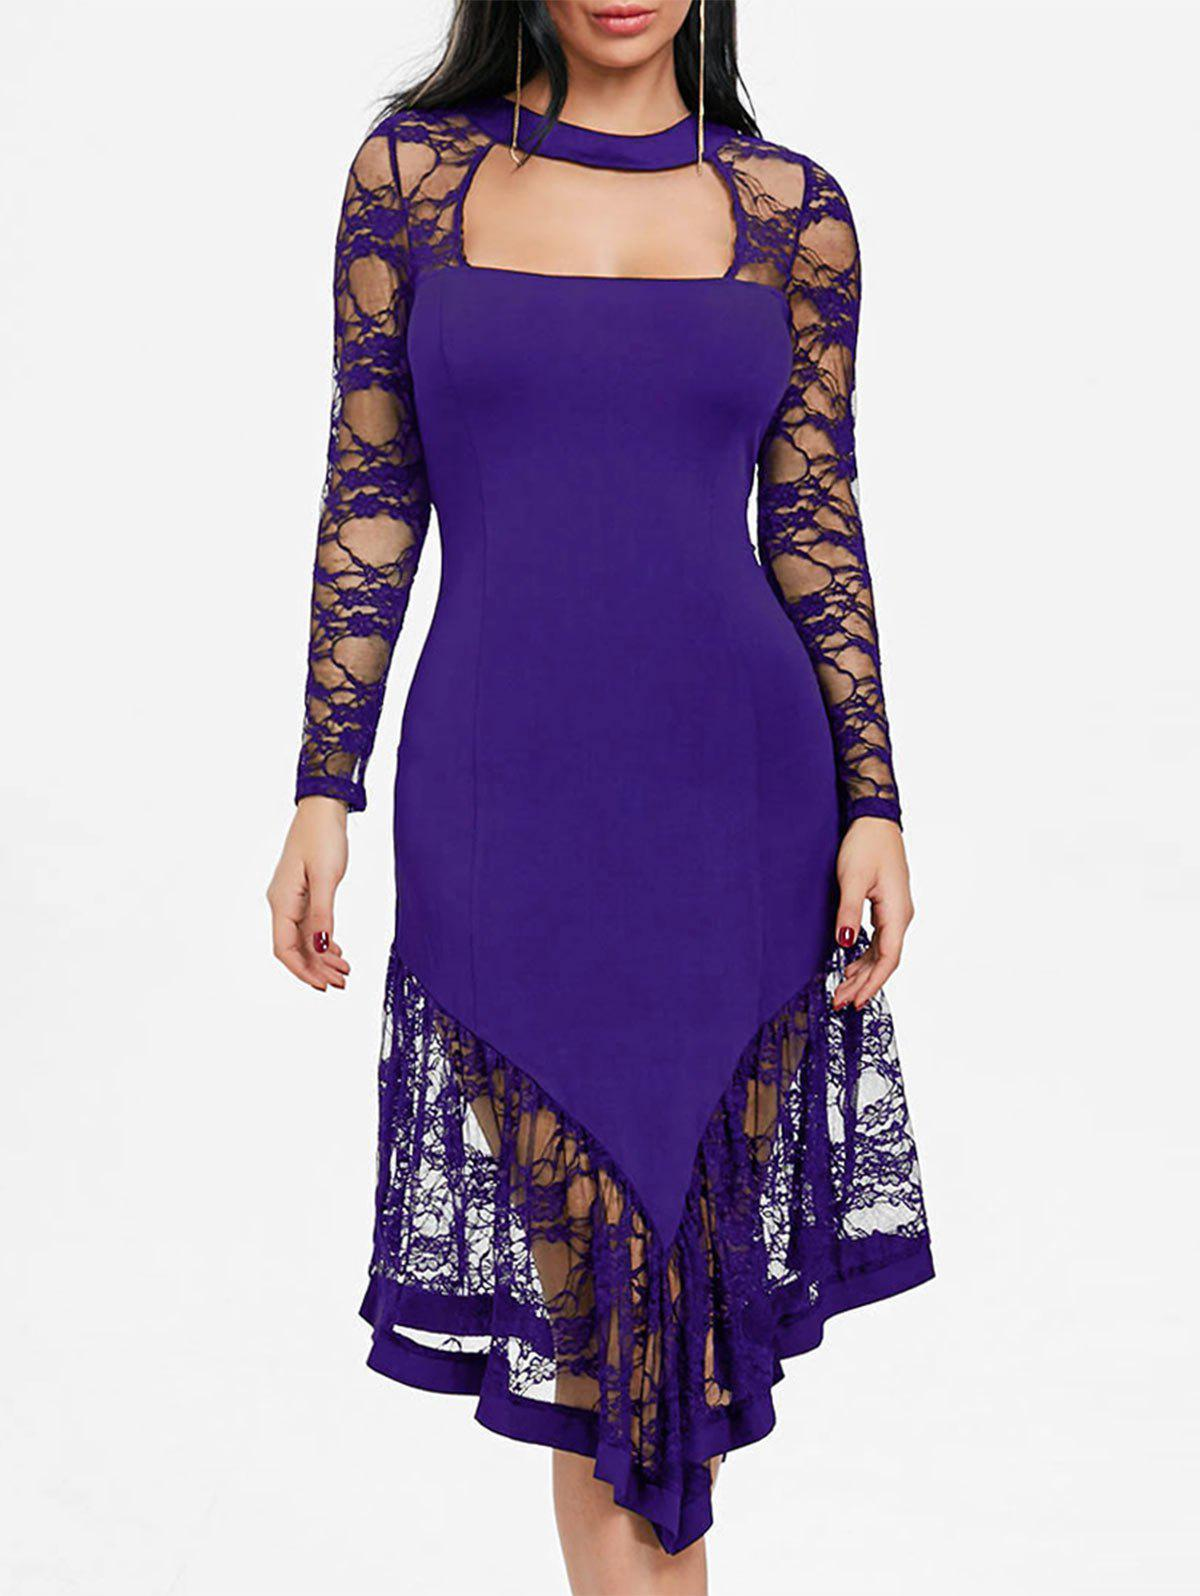 Lace Panel Cut Out Asymmetrical Club Dress - PURPLE XL